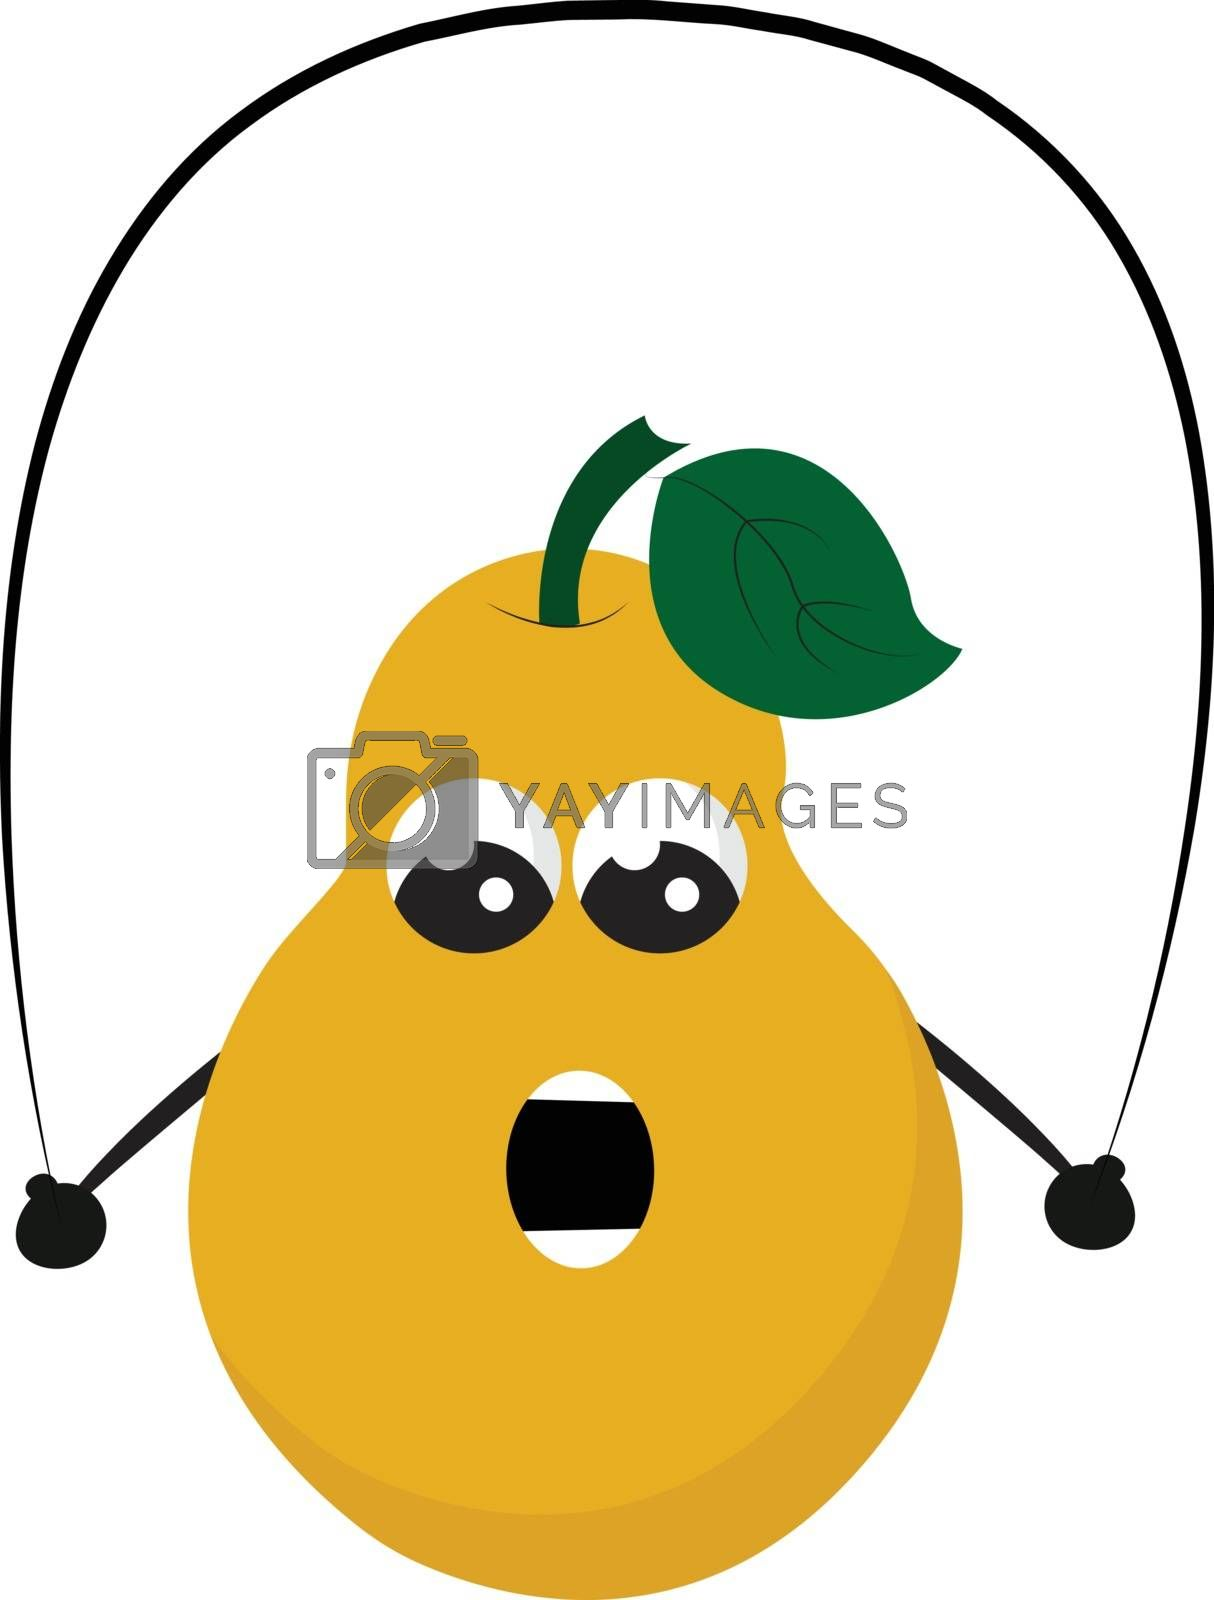 Royalty free image of Cartoon funny picture of a yellow pear fruit playing with a jump by Morphart